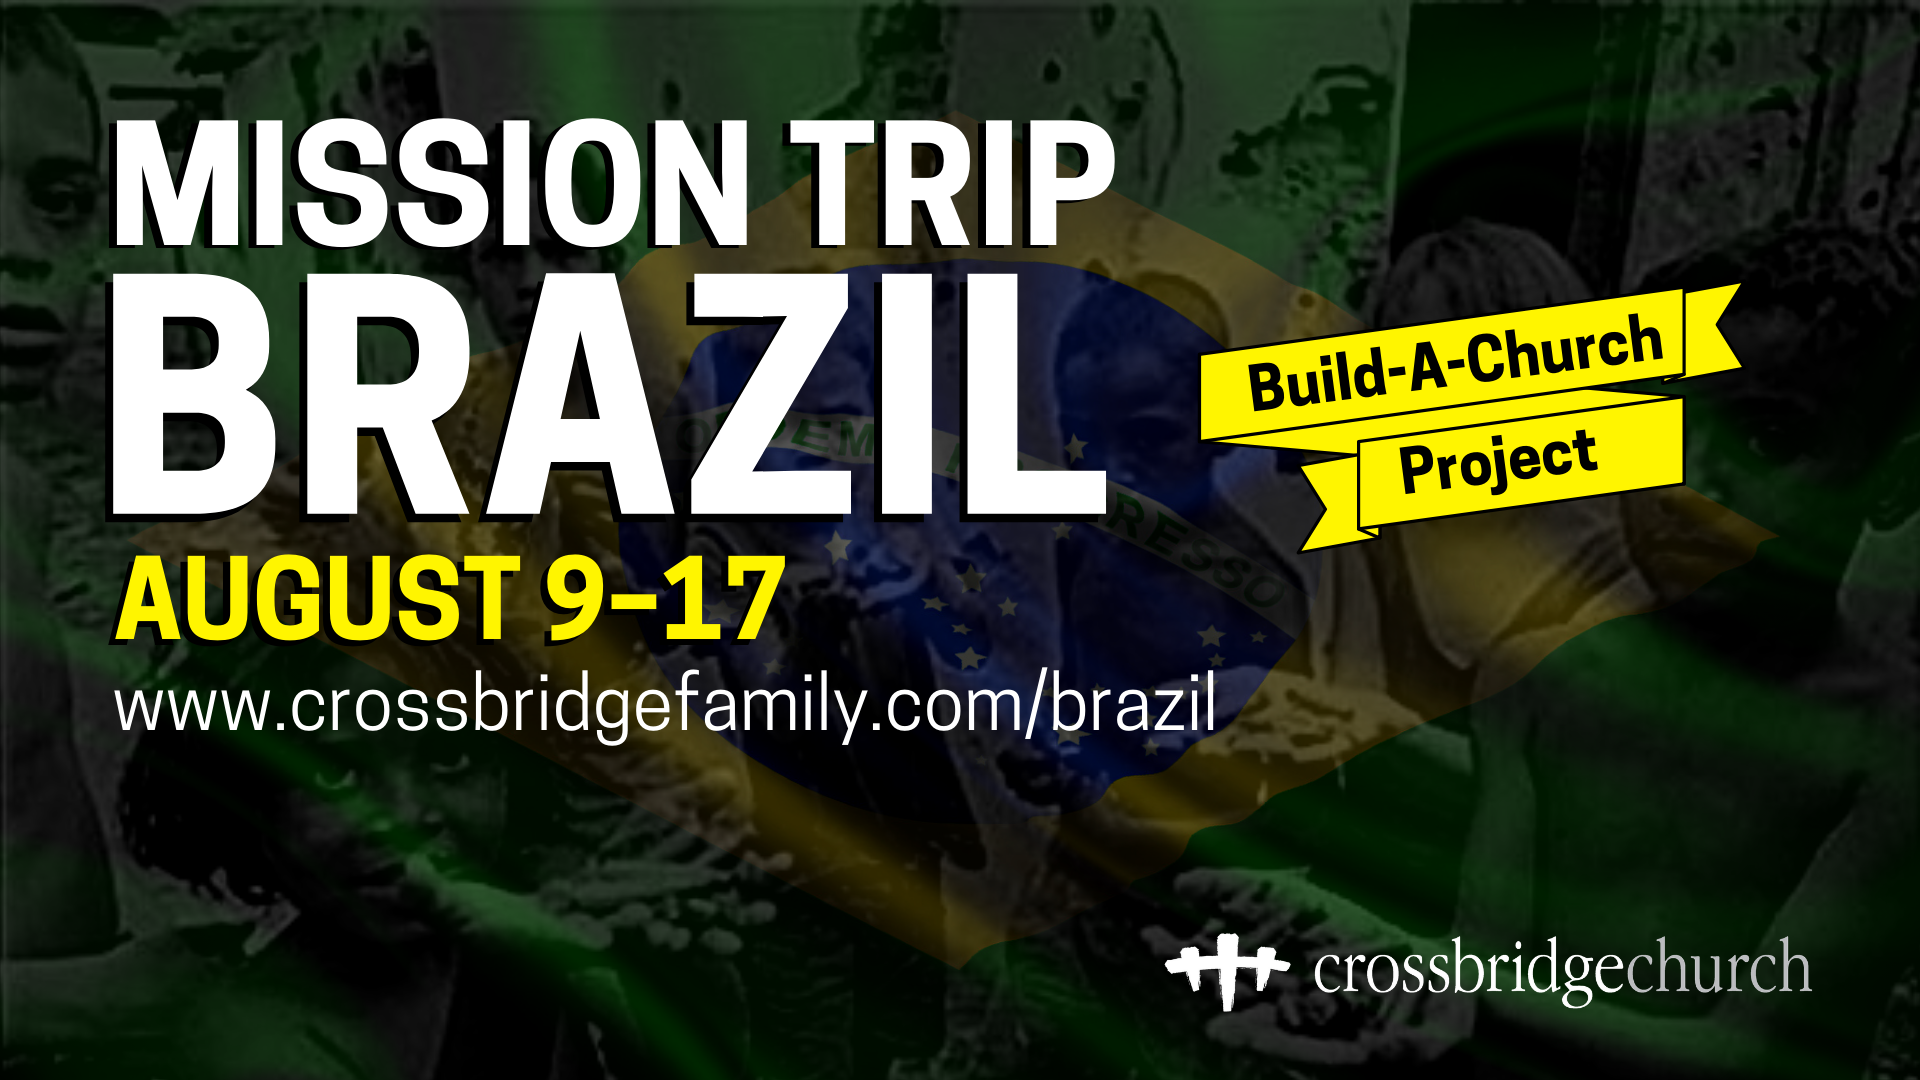 Short-term Mission Trip to BRAZIL this August 9-17. We're partnering with Memorial Presbyterian Church just outside Recife-PE, to bring one of their newest church-plant's construction to completion in the very poor city of Carnaíba. We'll also be collecting and delivering lightly used clothes and school supplies. We'll also be hosting and leading an open-air evangelism service (sharing our testimony and preaching the gospel) for the whole town in to consecutive nights. This is going to be an incredible experience! A lifetime chance to witness what God is doing around the world. For just $1,000 everything is included (Airfare, Ground transport, Lodging, all Meals). Crazy value! a $100 deposit will be due Wednesday, May 15th, final payment by June 24th. There will be 3 team-trip-meetings leading up to it. Get your PASSPORTS up to date, sign up and SAVE YOUR SPOT NOW